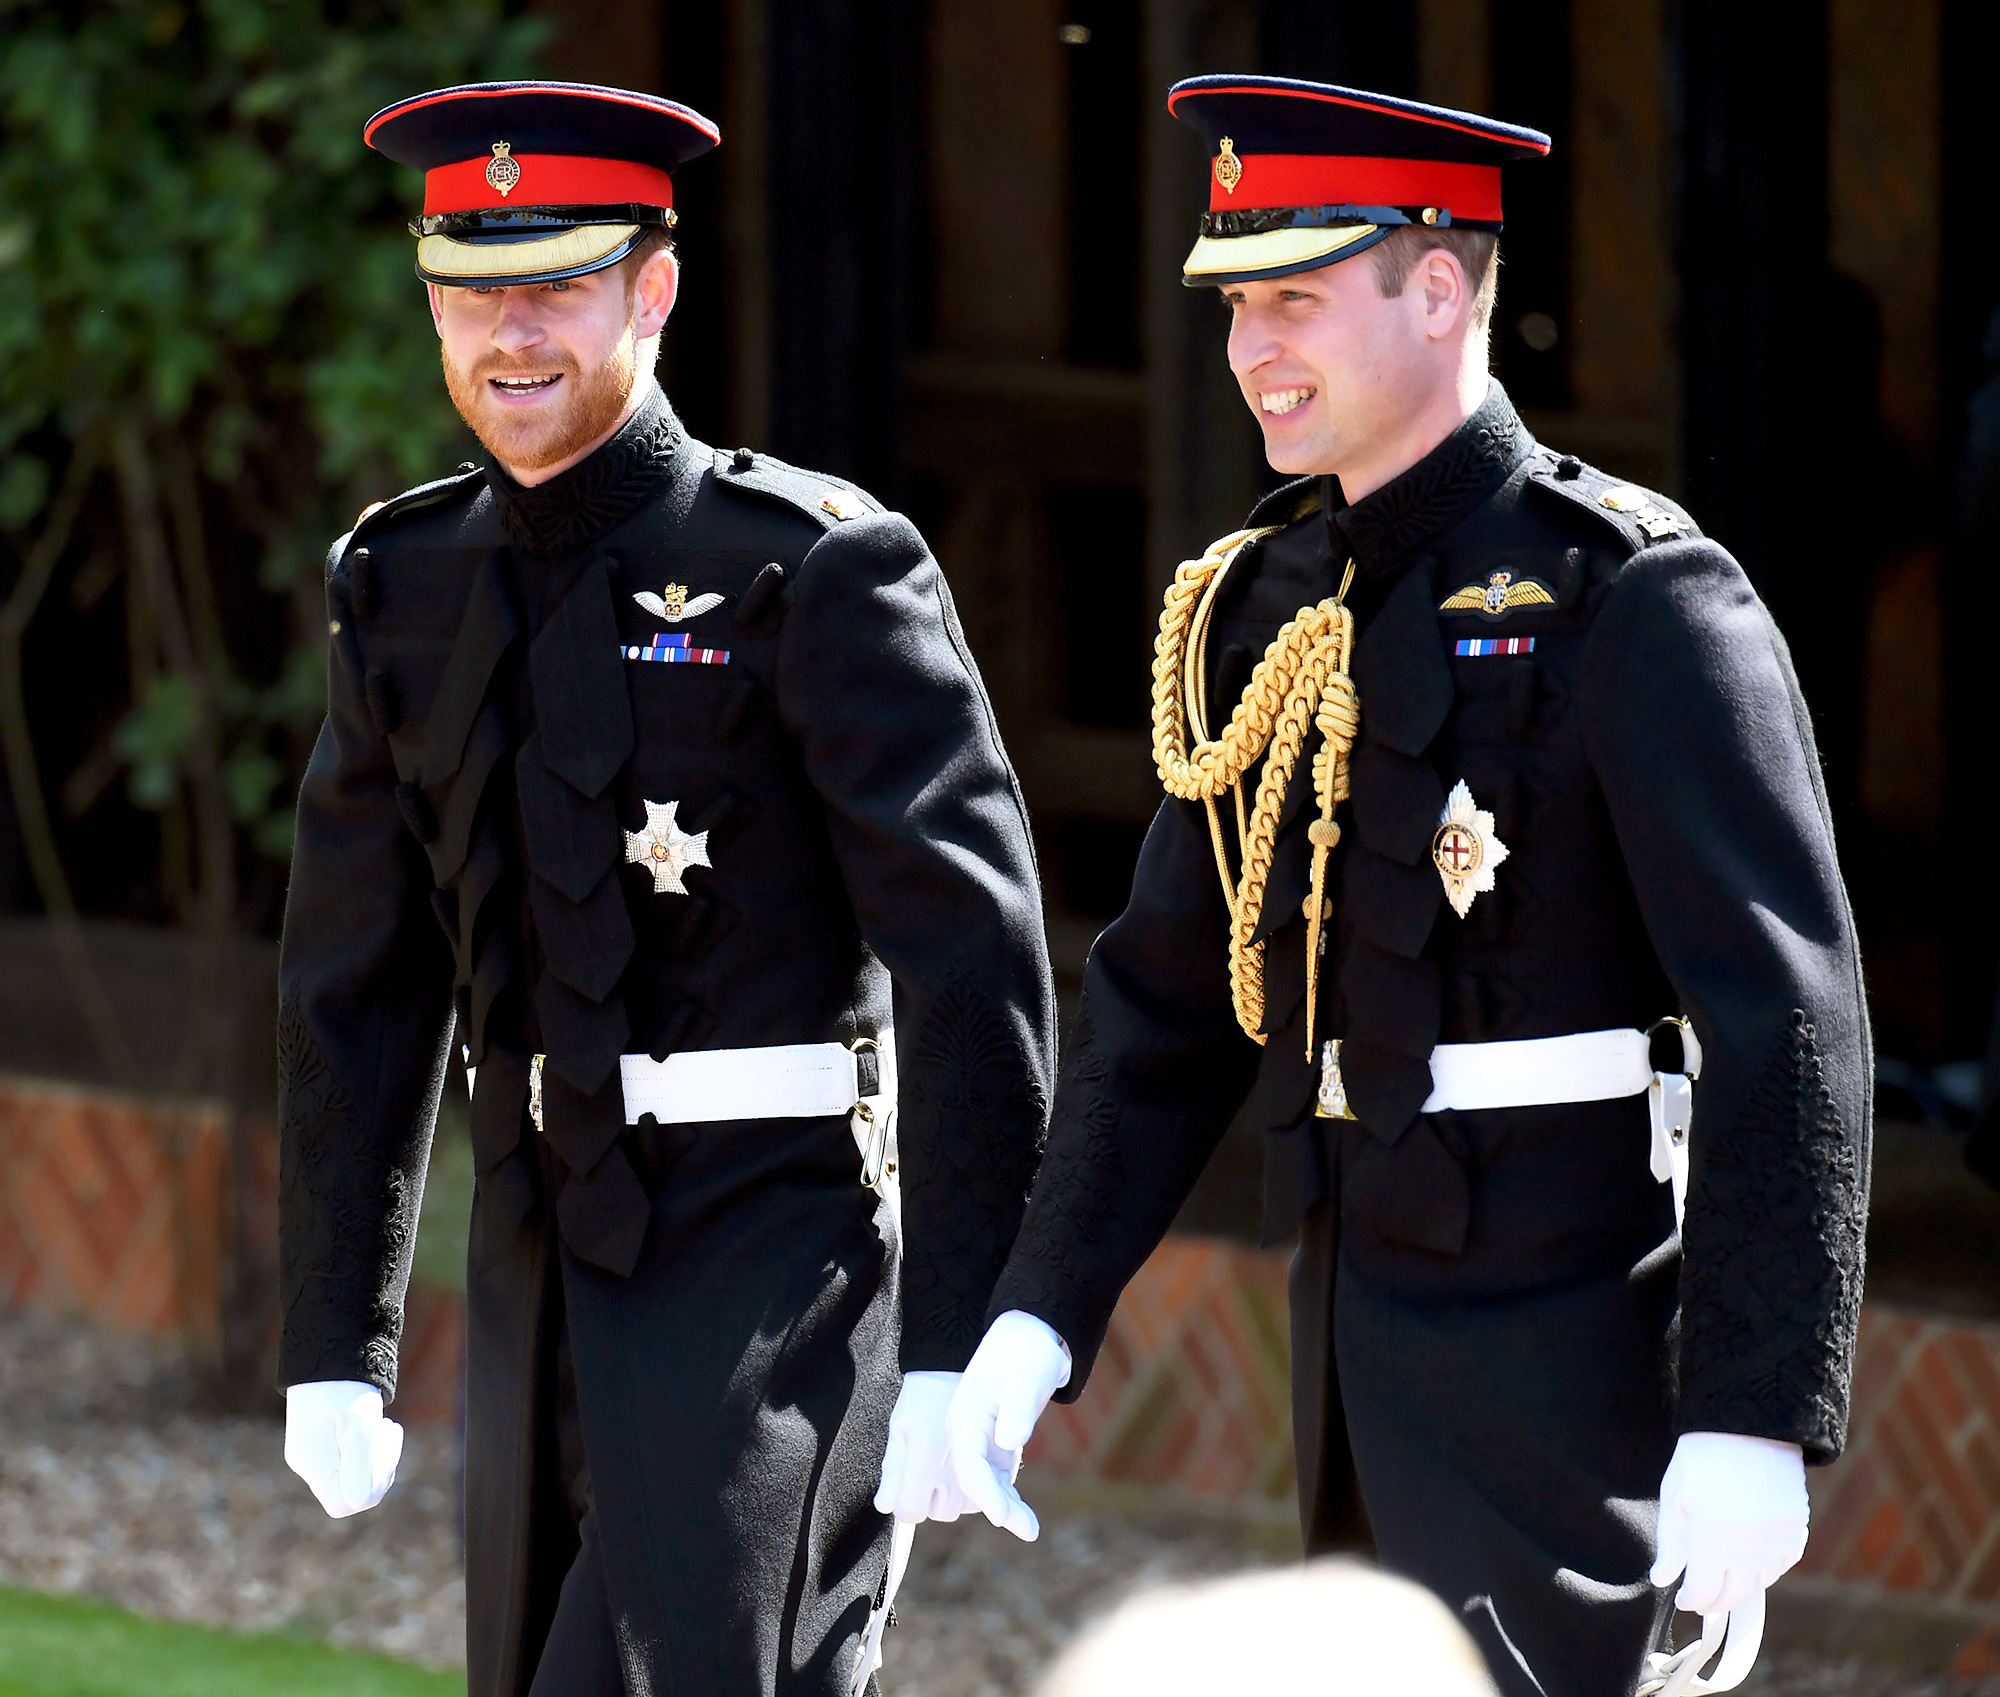 Prince Harry, Prince William Spotted After 'Constructive' Royal Family Meeting